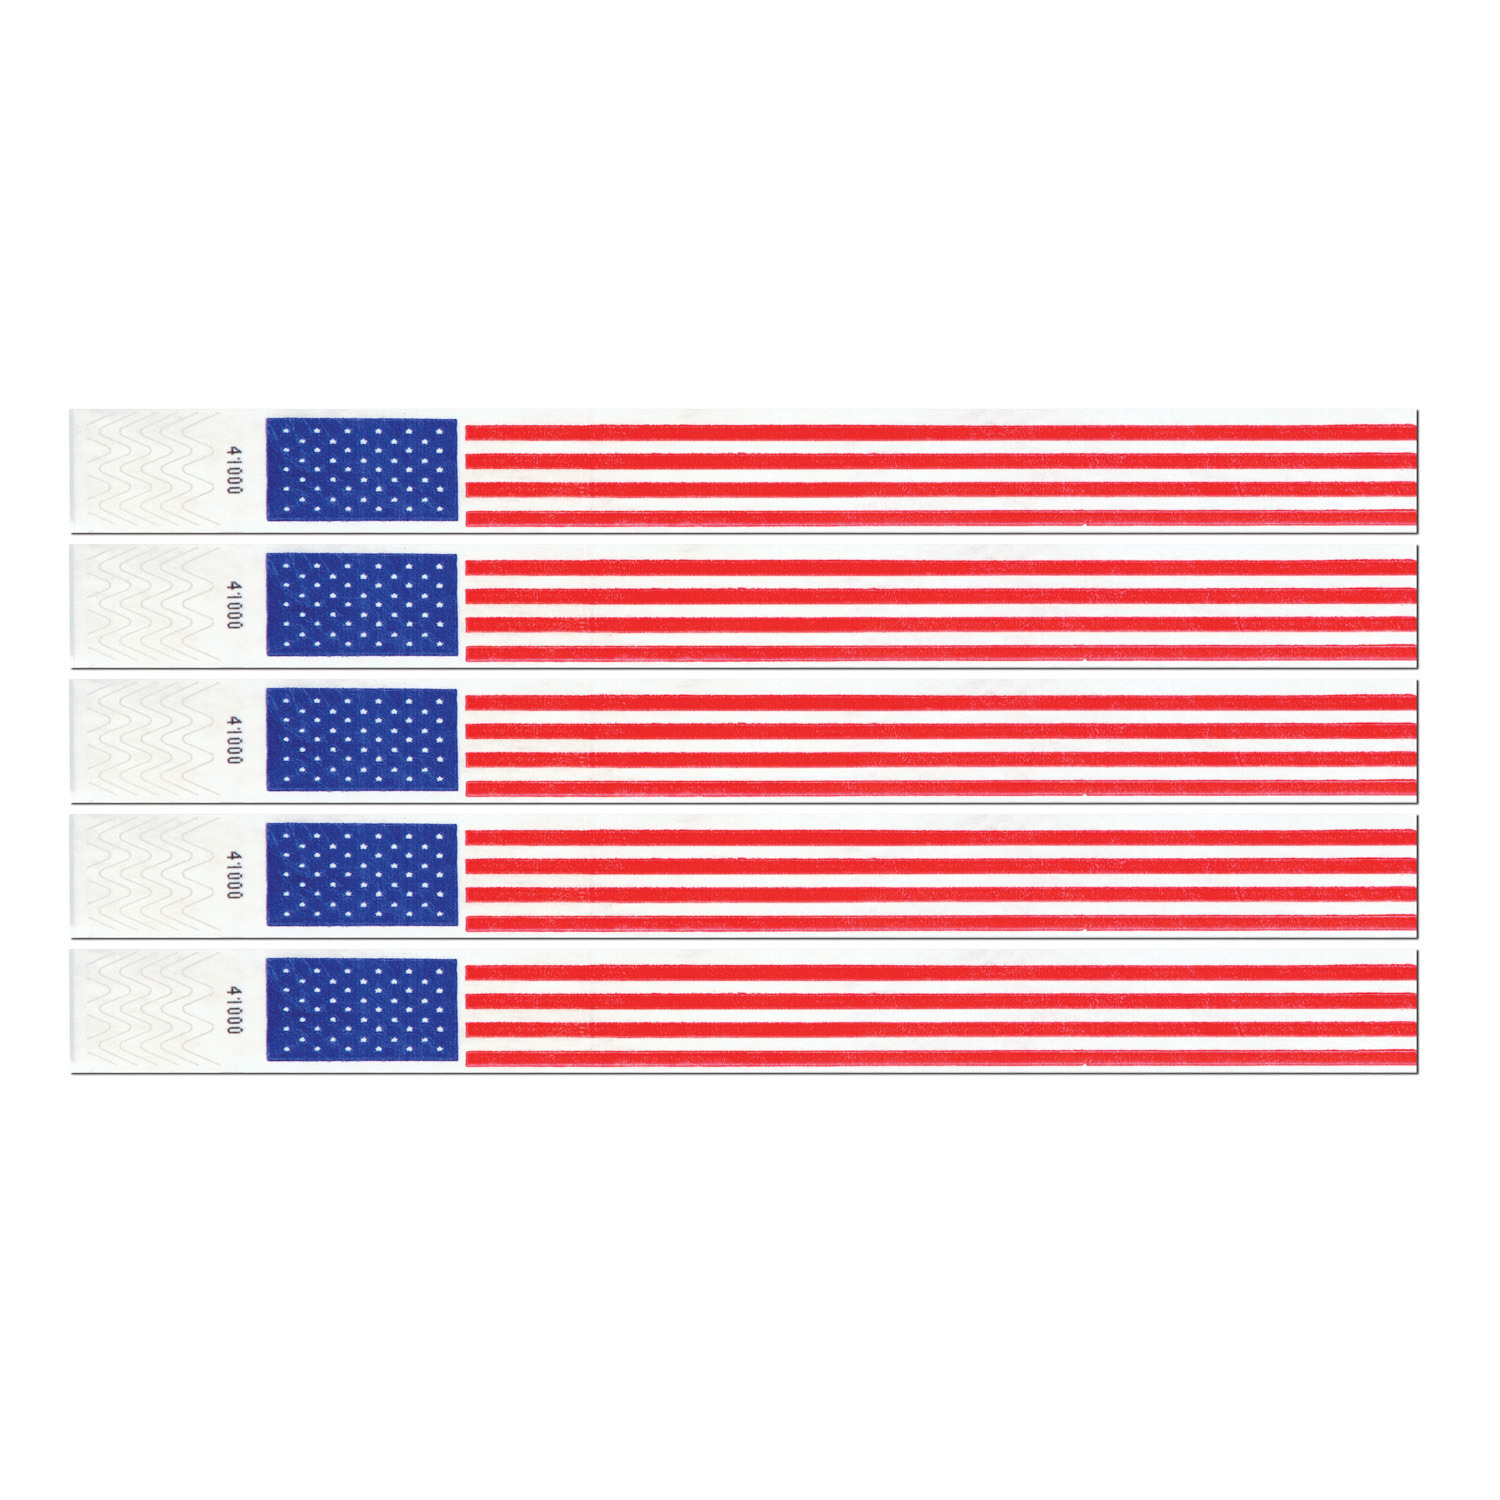 Patriotic Tyvek Wristbands (Pack of 100) Red White Blue, Patriotic accessory, Tyvek Wristbands, Inexpensive party accessories, Fourth of July, 4th of July, Novelty Party supplies, Cheap party goods, Wholesale party supplies, Patriotic party supplies